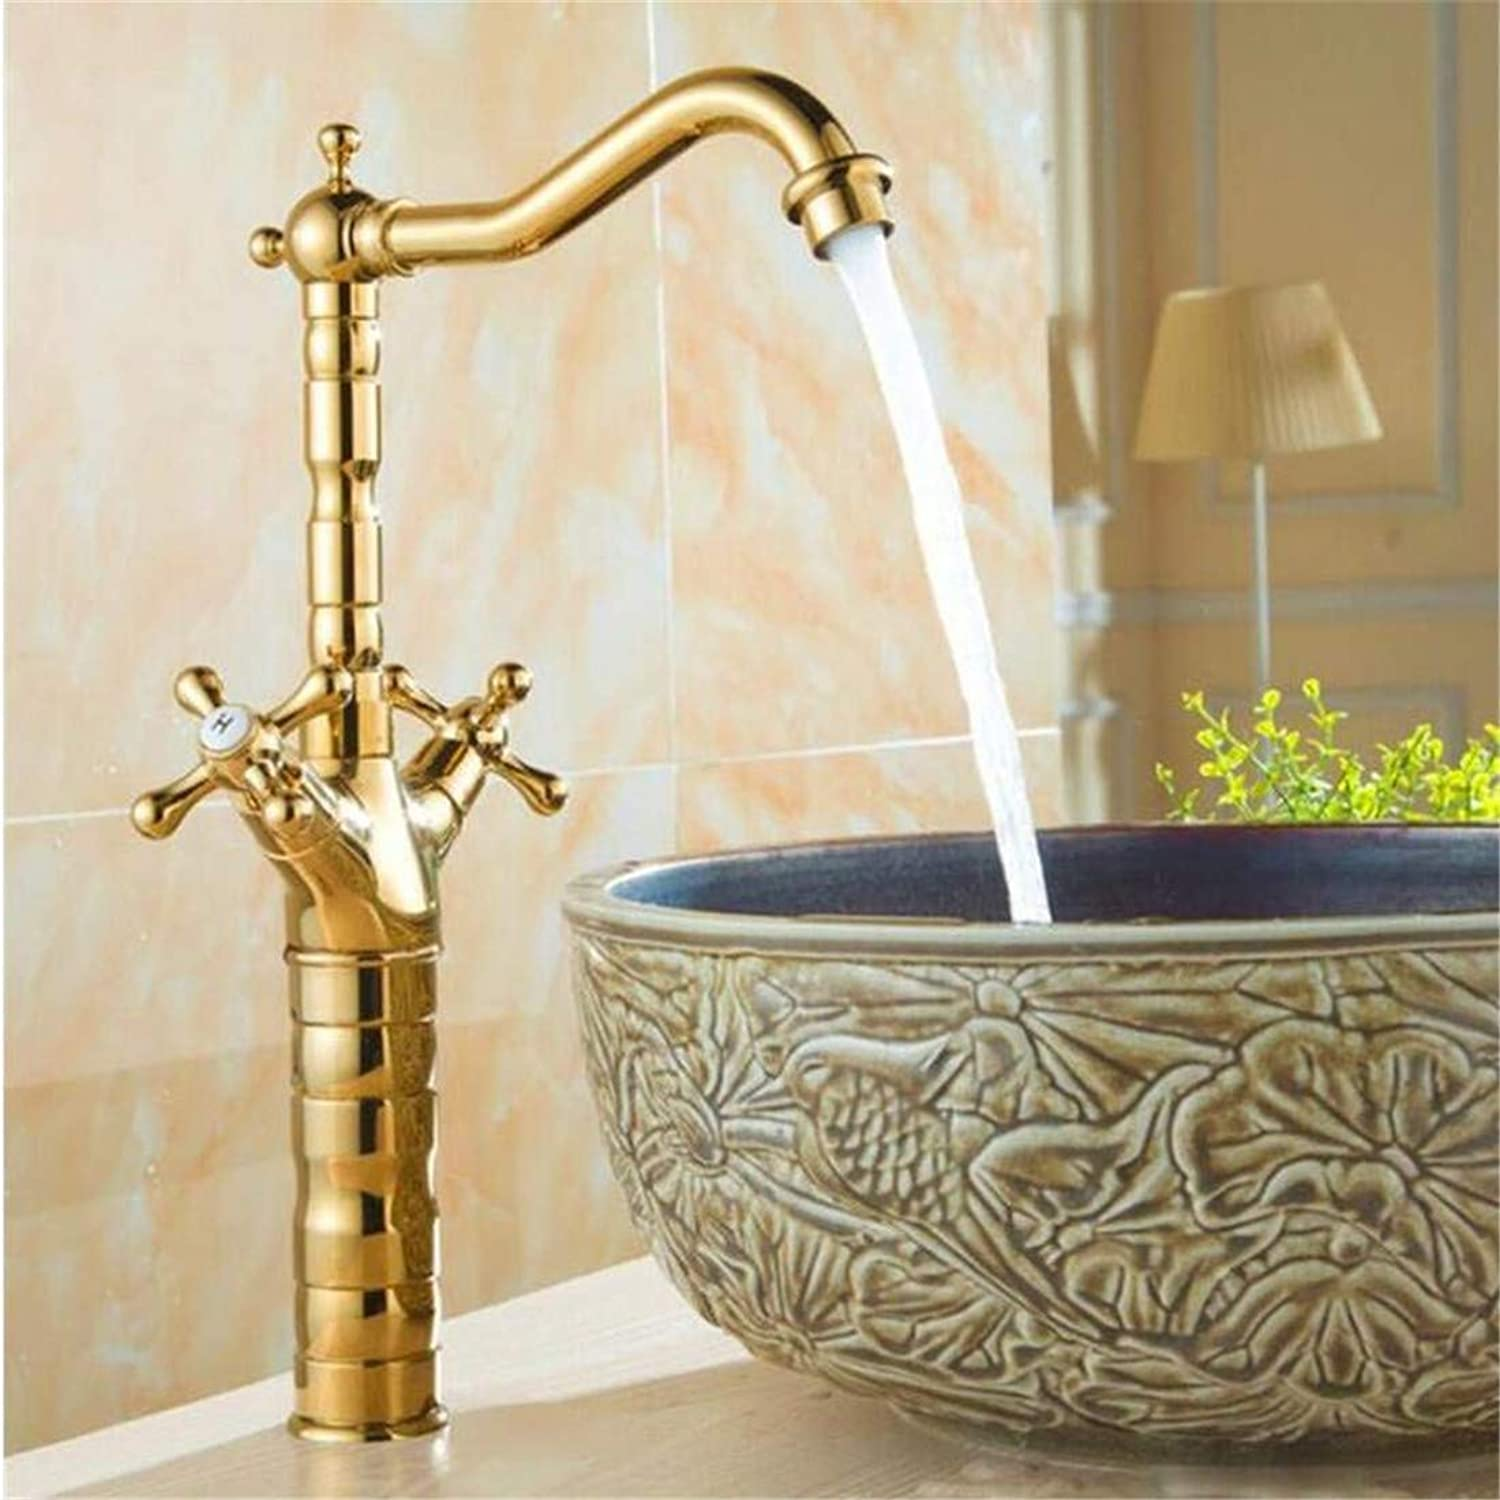 Retro Hot and Cold Water Brass Kitchen Faucet Hot and Cold, Antique Copper Mixer Water Tap, Retro Kitchen Sink Basin Faucet